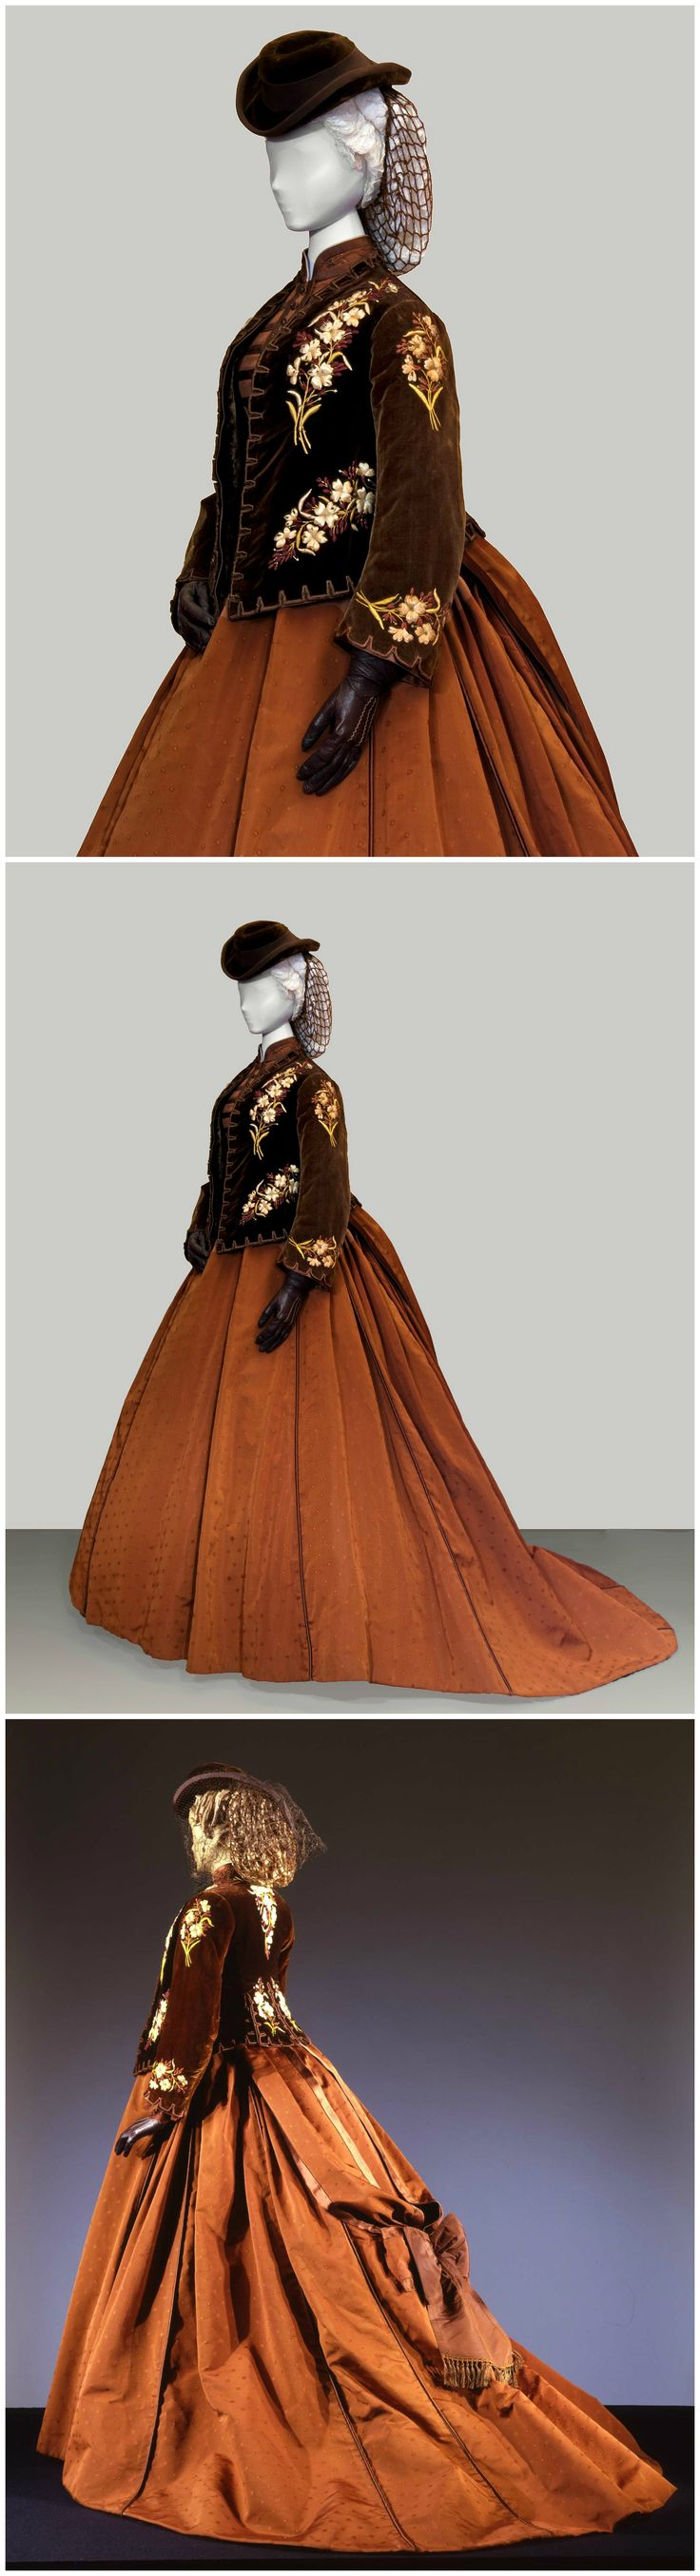 1860s-style costume, worn by Romy Schneider in the role of Empress Elisabeth of Austria in the film Ludwig (1972). Designed by Piero Tosi. Short jacket in brown velvet with small flowers embroidered in ivory and beige silk, lined in otter. Gown in brown with big satin bow. Collection of Pitti Palace Costume Gallery, via: (Top & Middle): Eventi Culturali Magazine; (Bottom): Europeana Fashion Tumblr (photo: Gabinetto fotografico SBAS, Mario Carrieri).